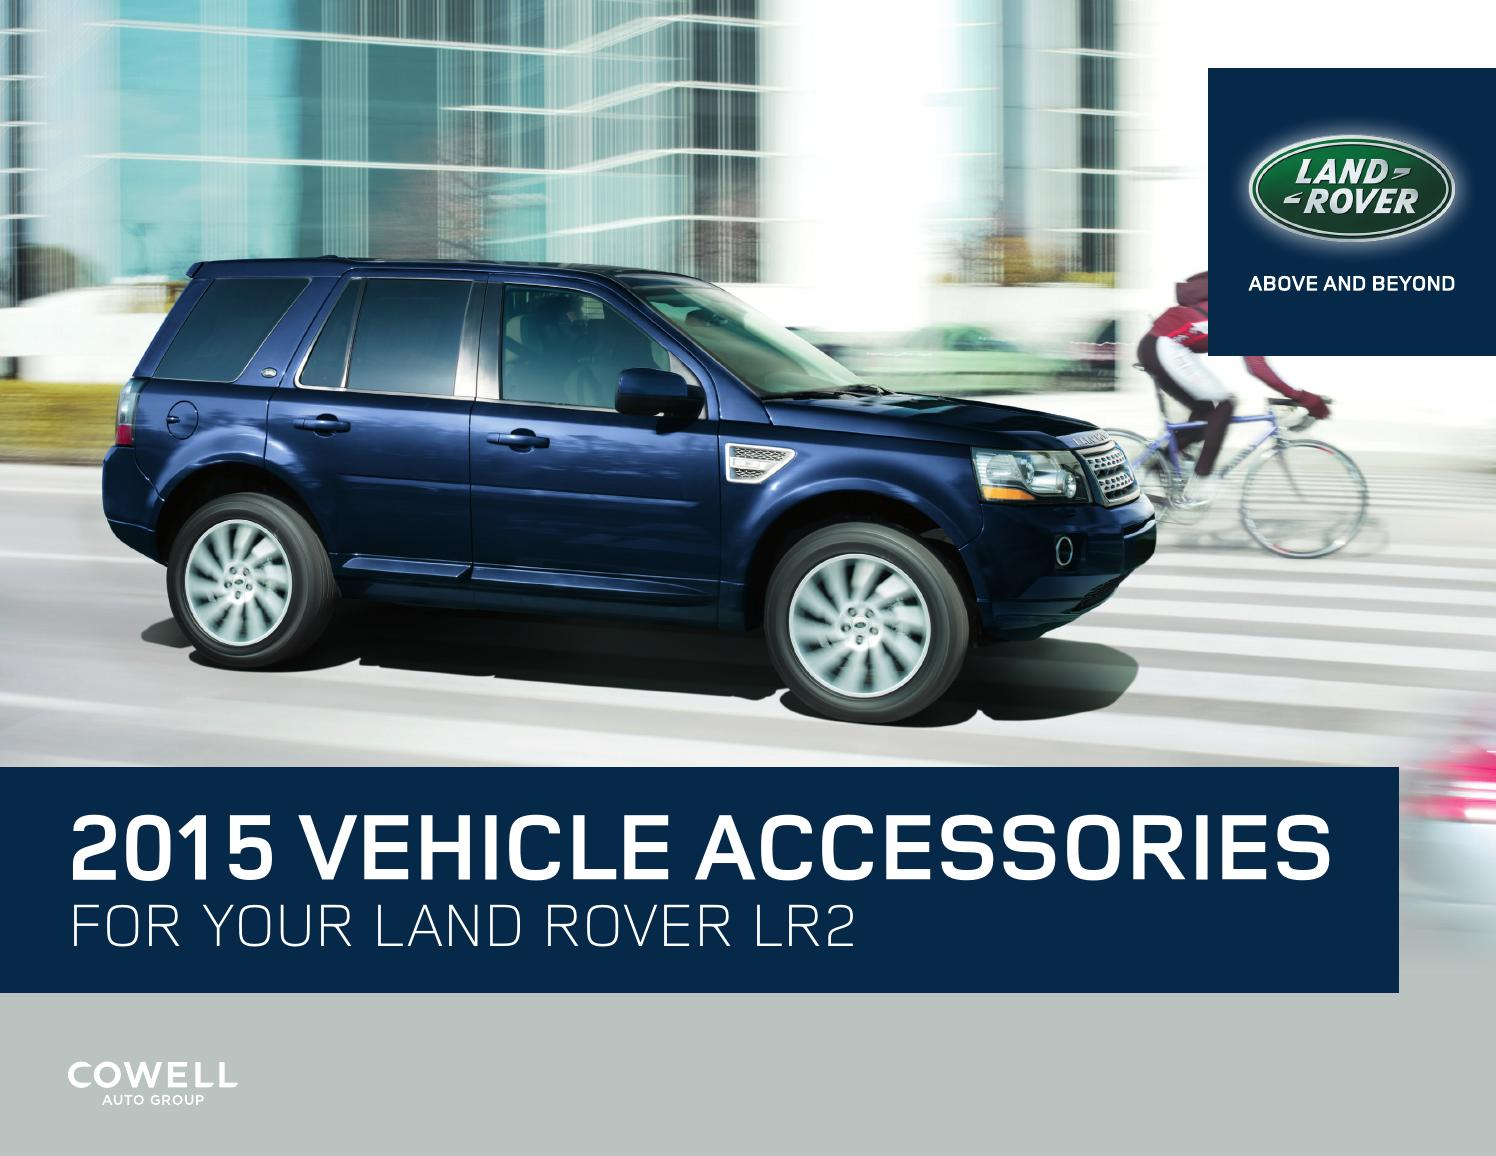 landrover hse at accident detail used motors land ez awd rover accessories free